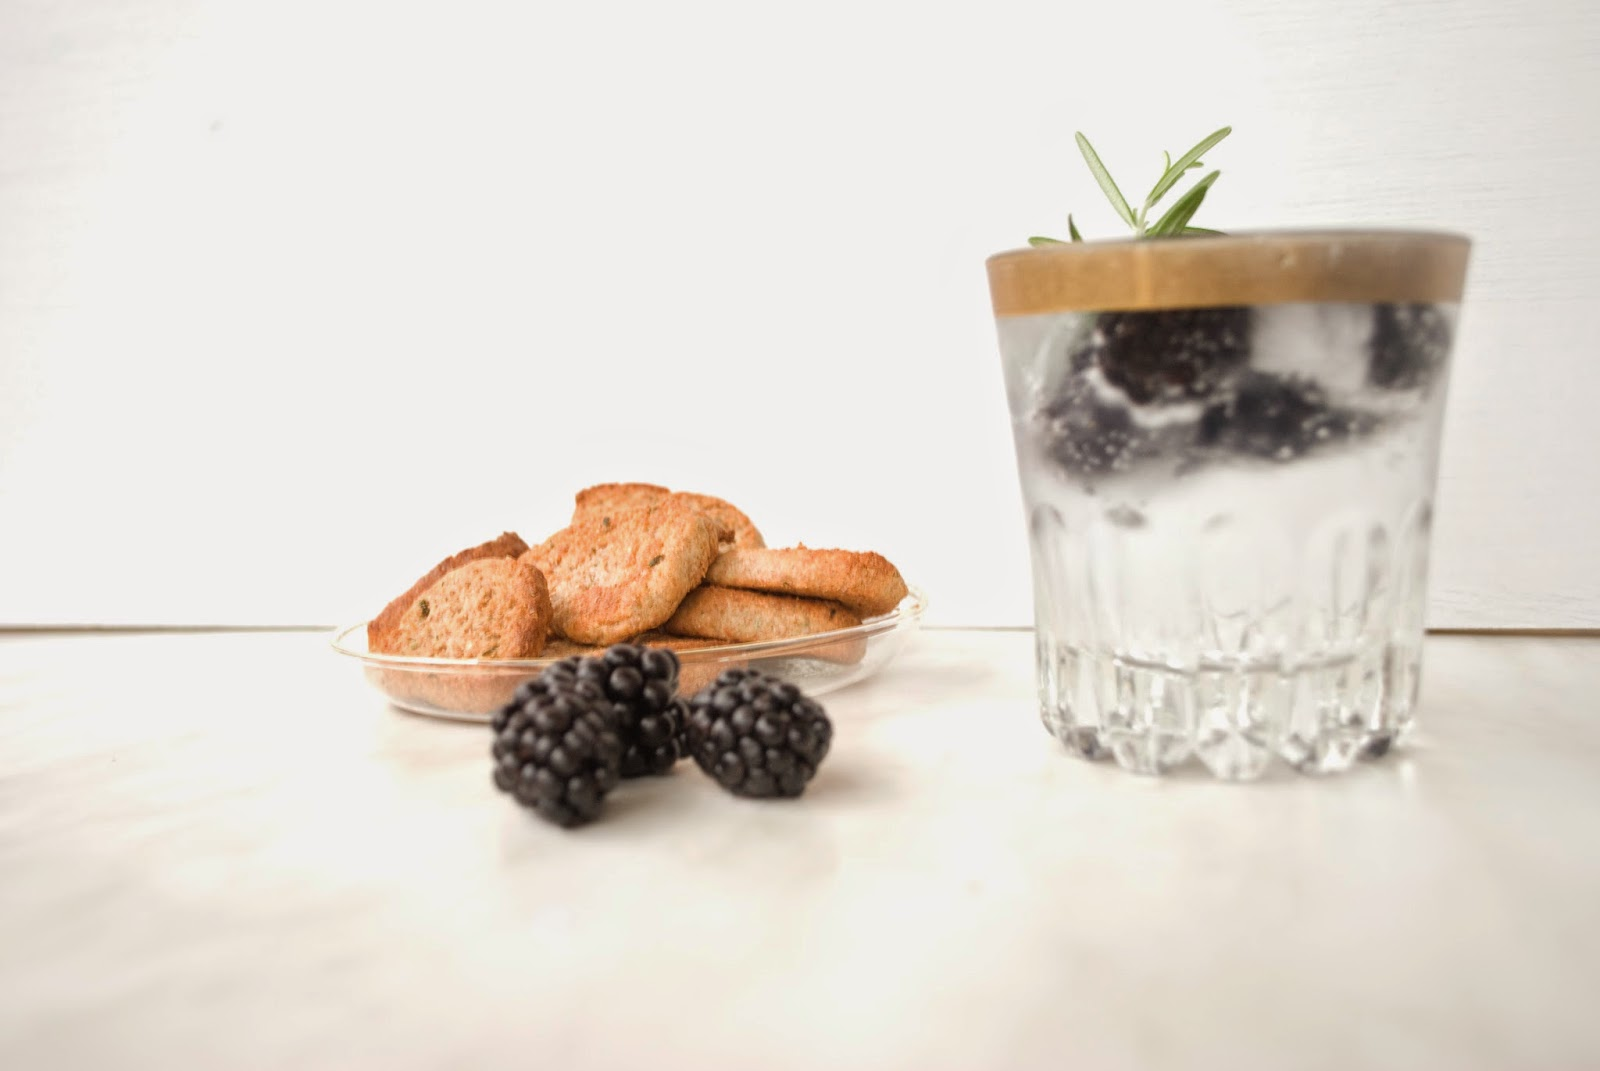 Coctails and Snacks: Rosemary´s Baby Drinks Friday Night Weekend Wochenende Freitag Nacht Abend Sommer Longdrink Rosmarin Gin Tonic Tonic Water Kekse Cracker Cookies